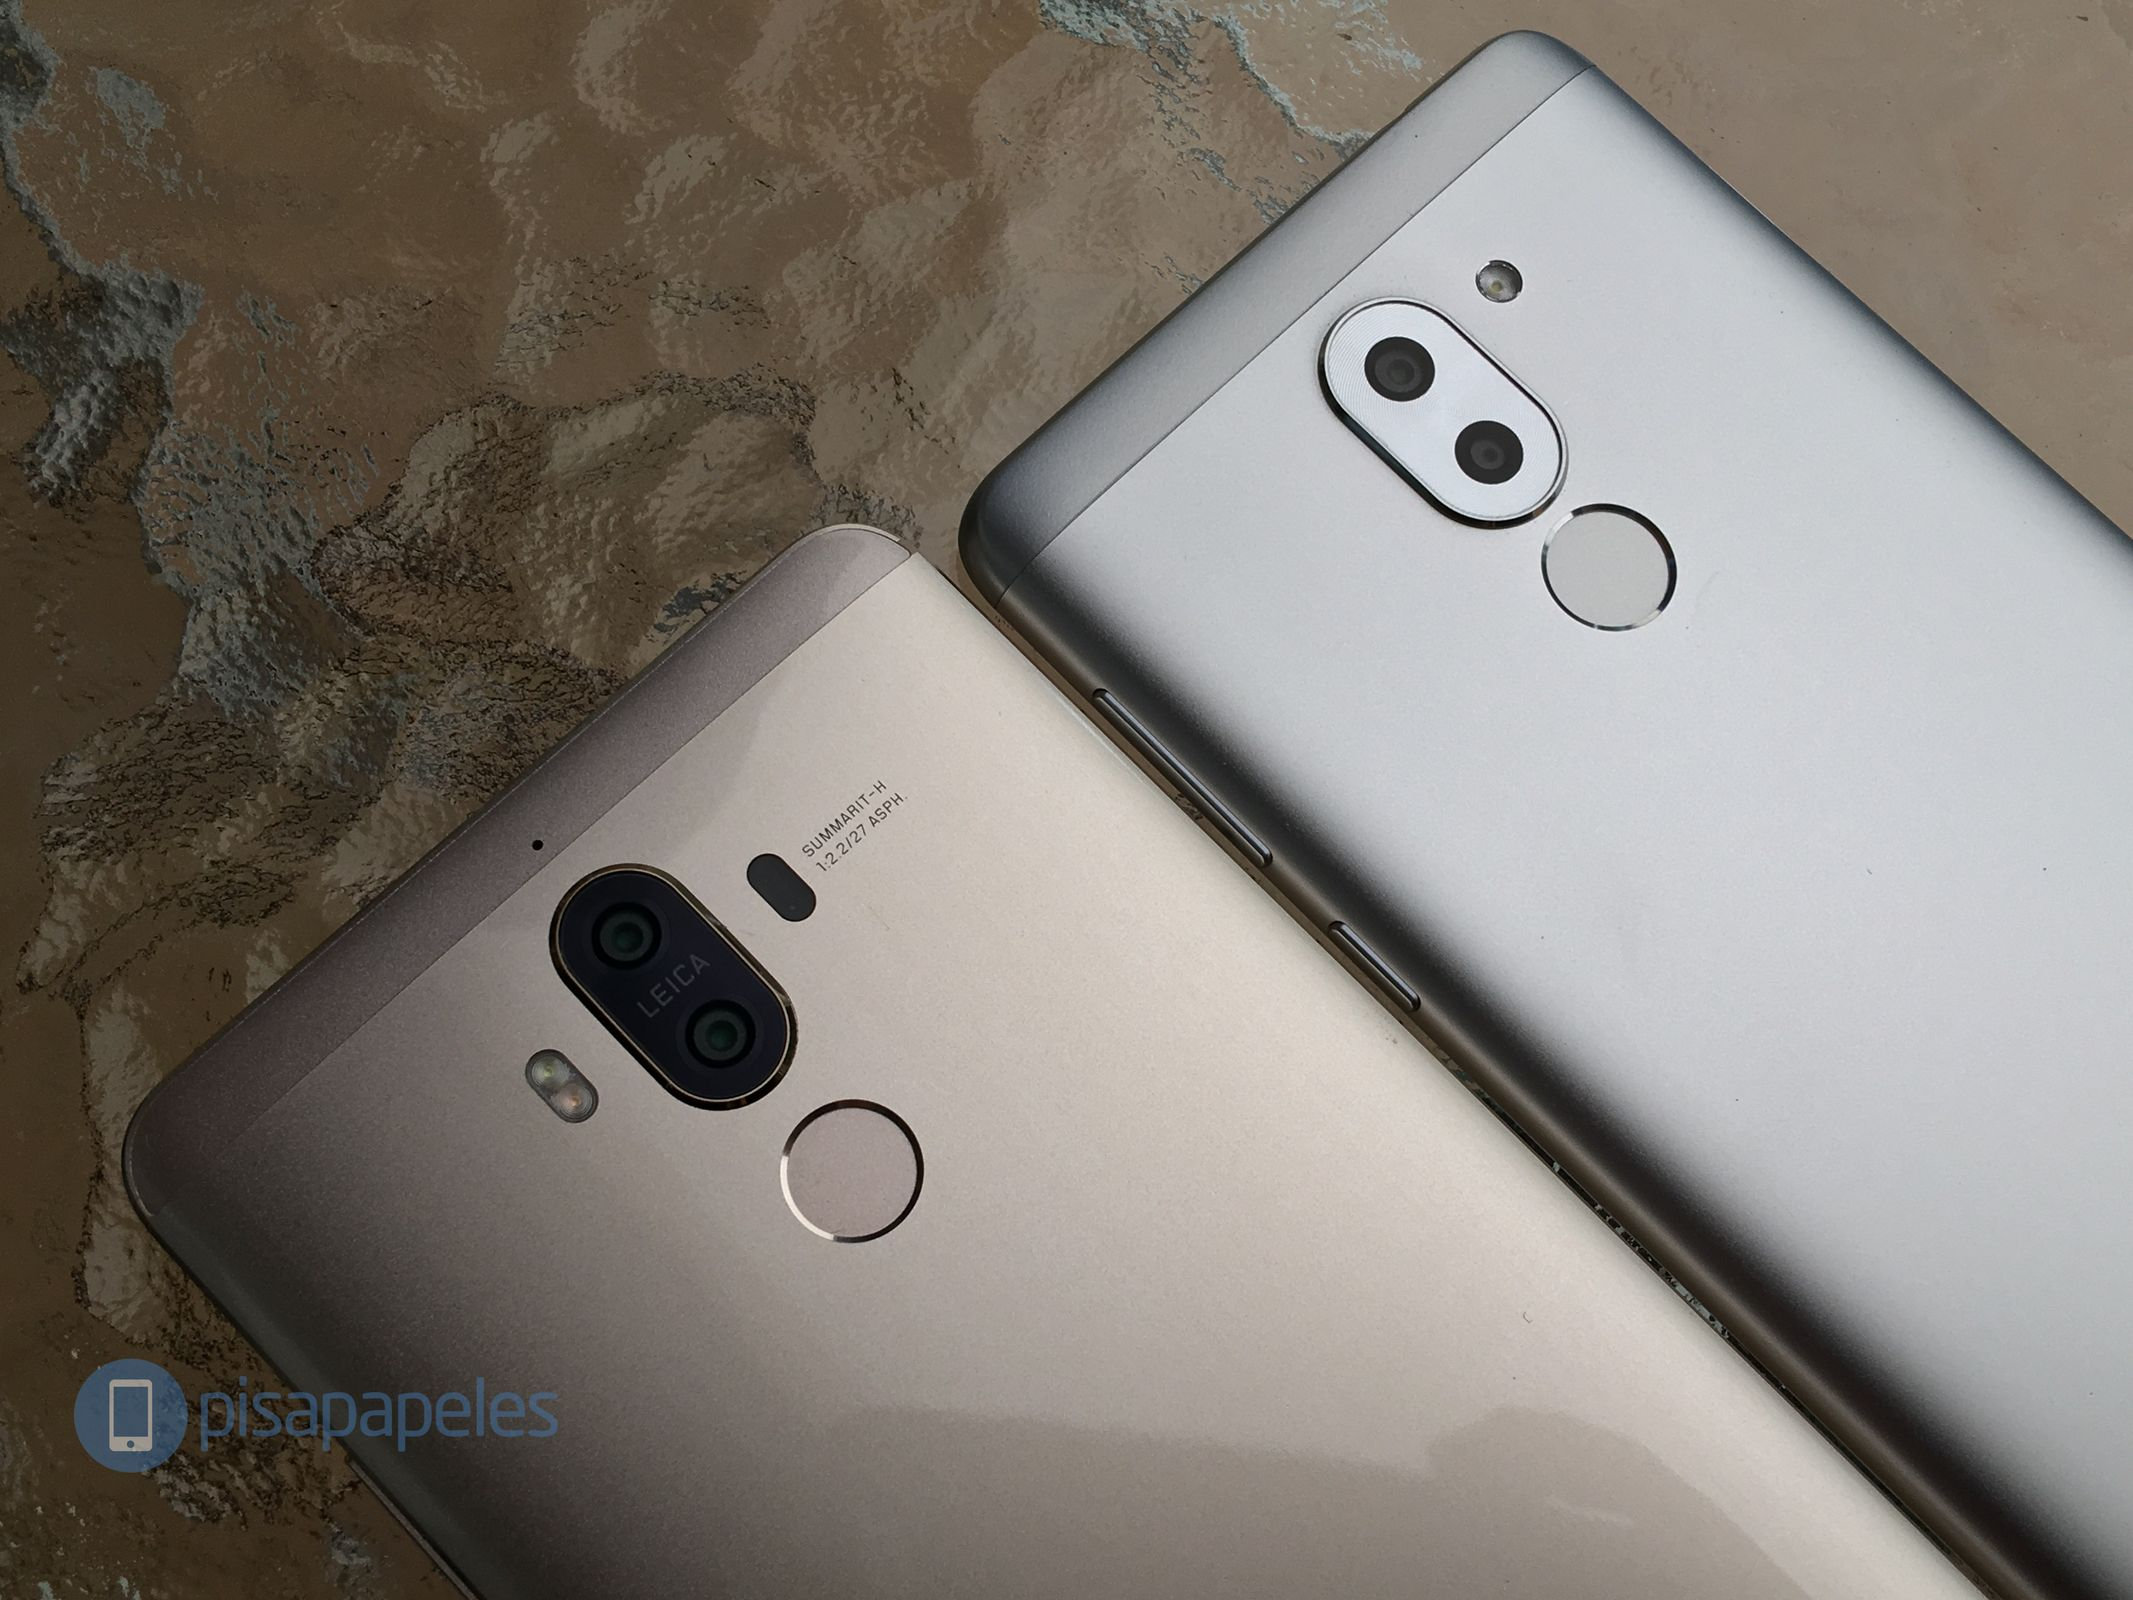 huawei-mate-9-and-honor-6x Honor 6X im Langzeittest Featured Gadgets Google Android Hardware Honor Reviews Smartphones Testberichte YouTube Videos